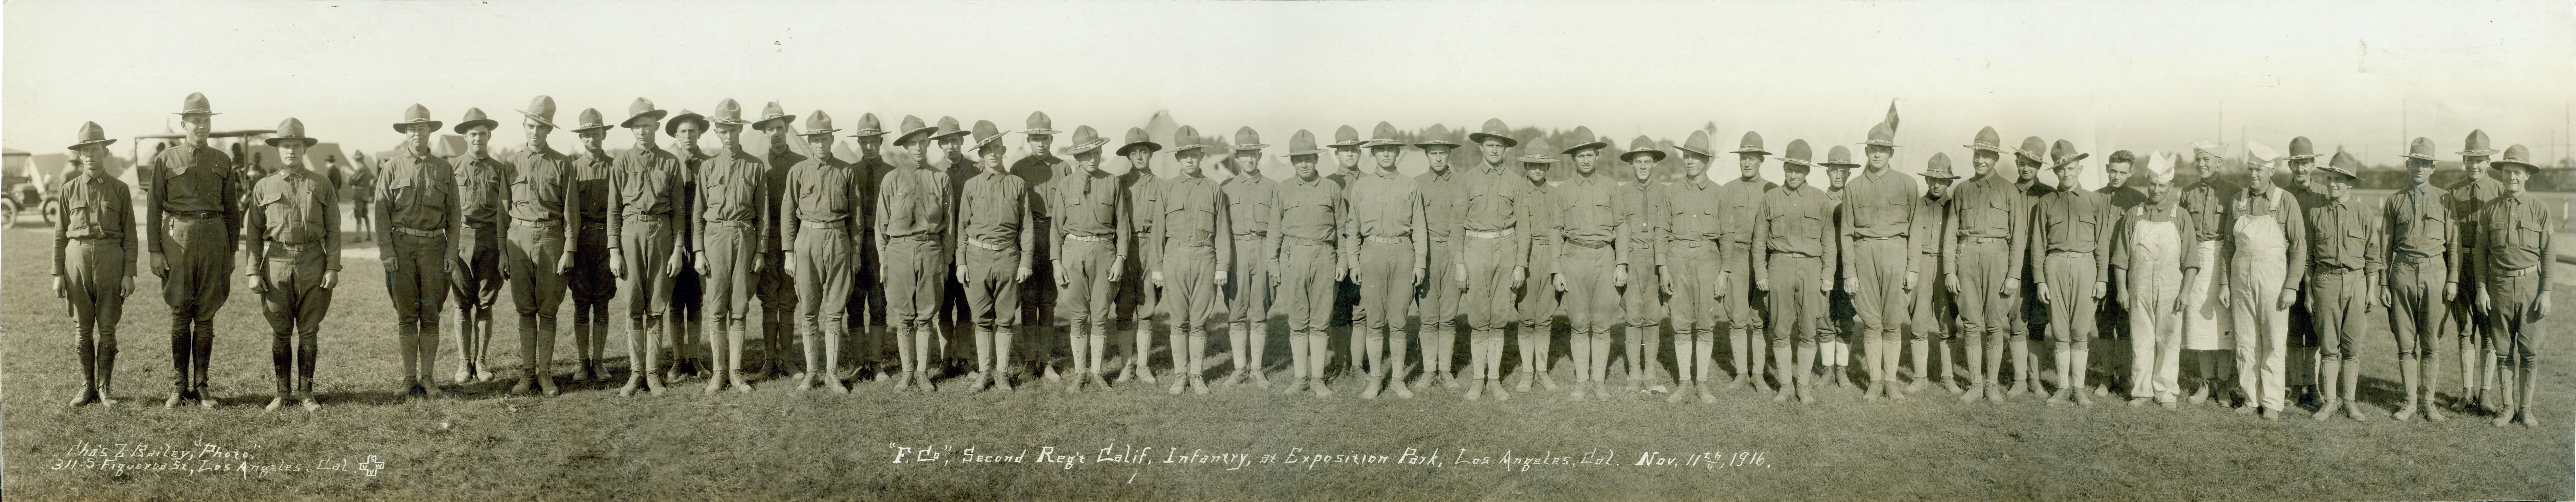 The members of Woodland National Guard Company F look in good shape on November 11, 1916 upon their return to California after months of service on the border with Mexico protecting the U. S. against further attacks by Mexican revolutionary Poncho Villa and his Villistas. (Photo from the Doc Chandler family.)